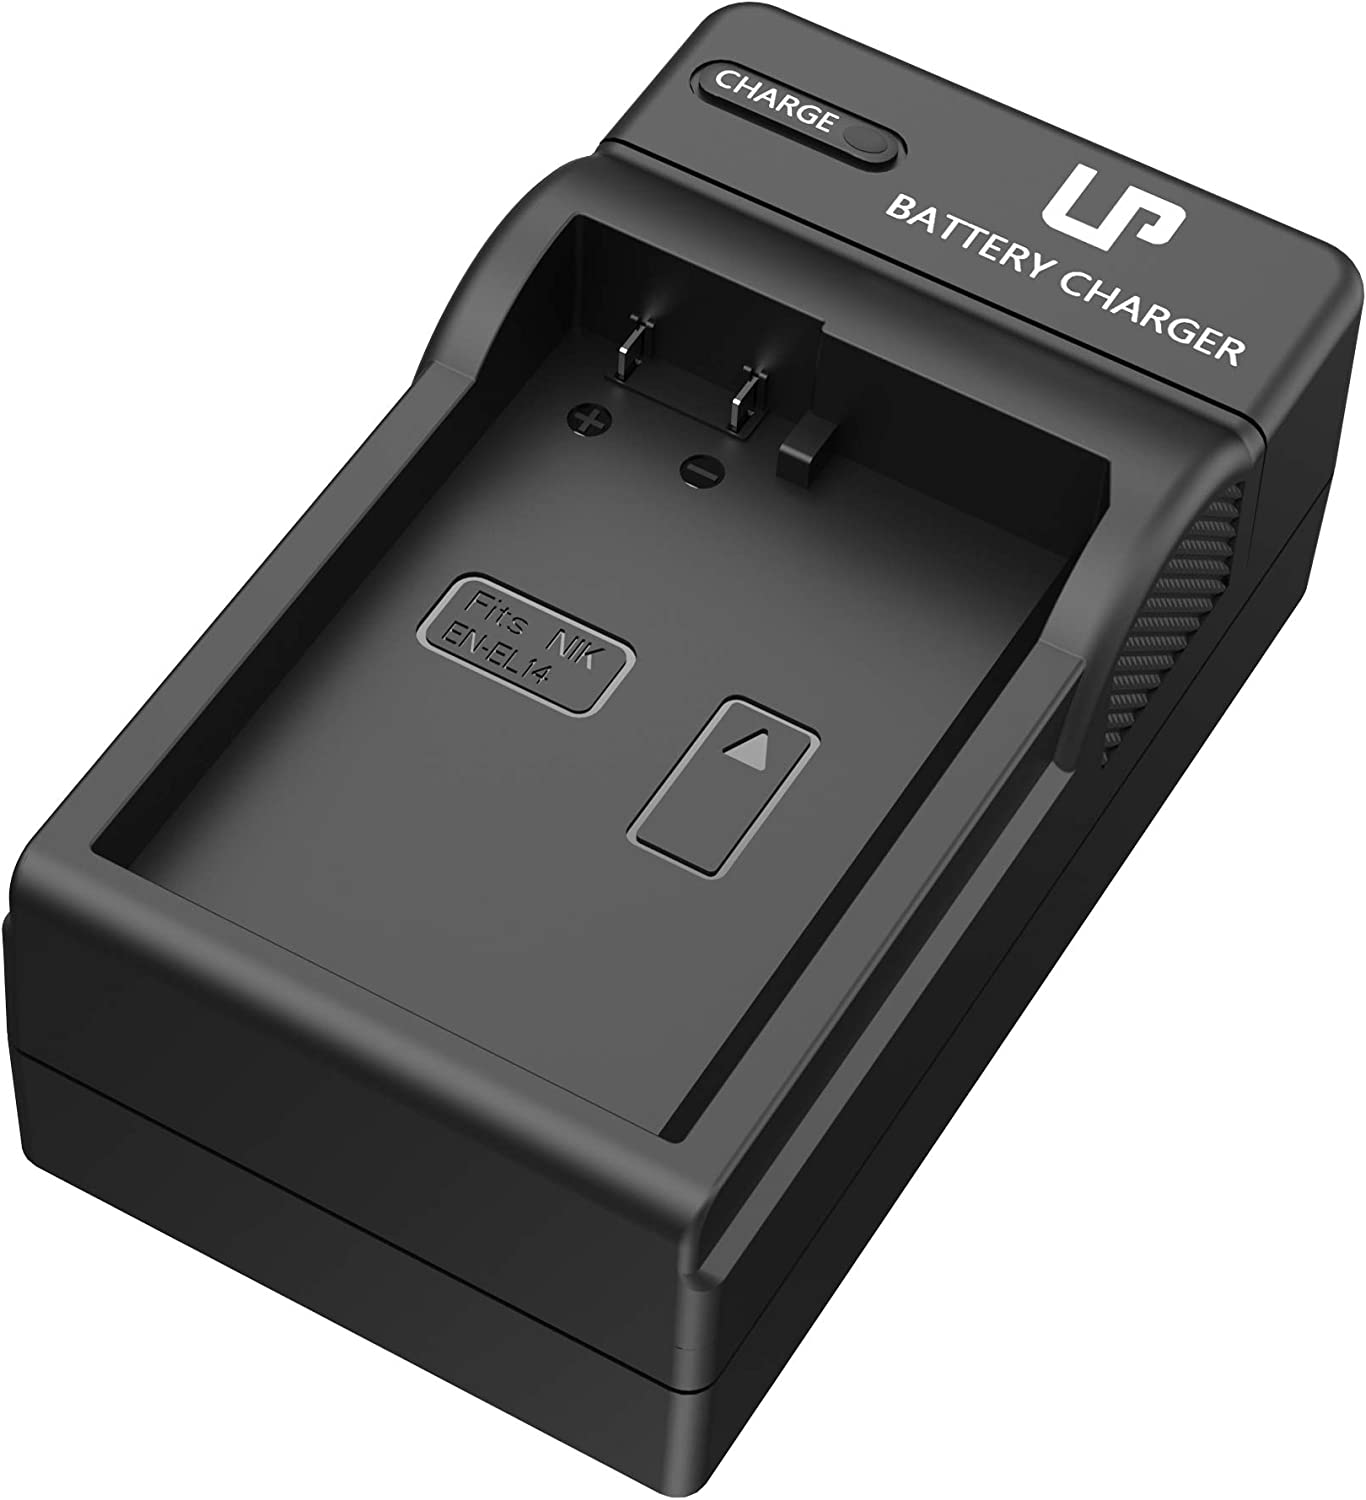 EN-EL14 EN EL14a Battery Charger, LP Charger Compatible with Nikon D3500, D5600, D3300, D5100, D5500, D3100, D3200, D5200, D5300, D3400, DF, Coolpix P7000, P7100, P7700, P7800 Cameras & More : Camera & Photo